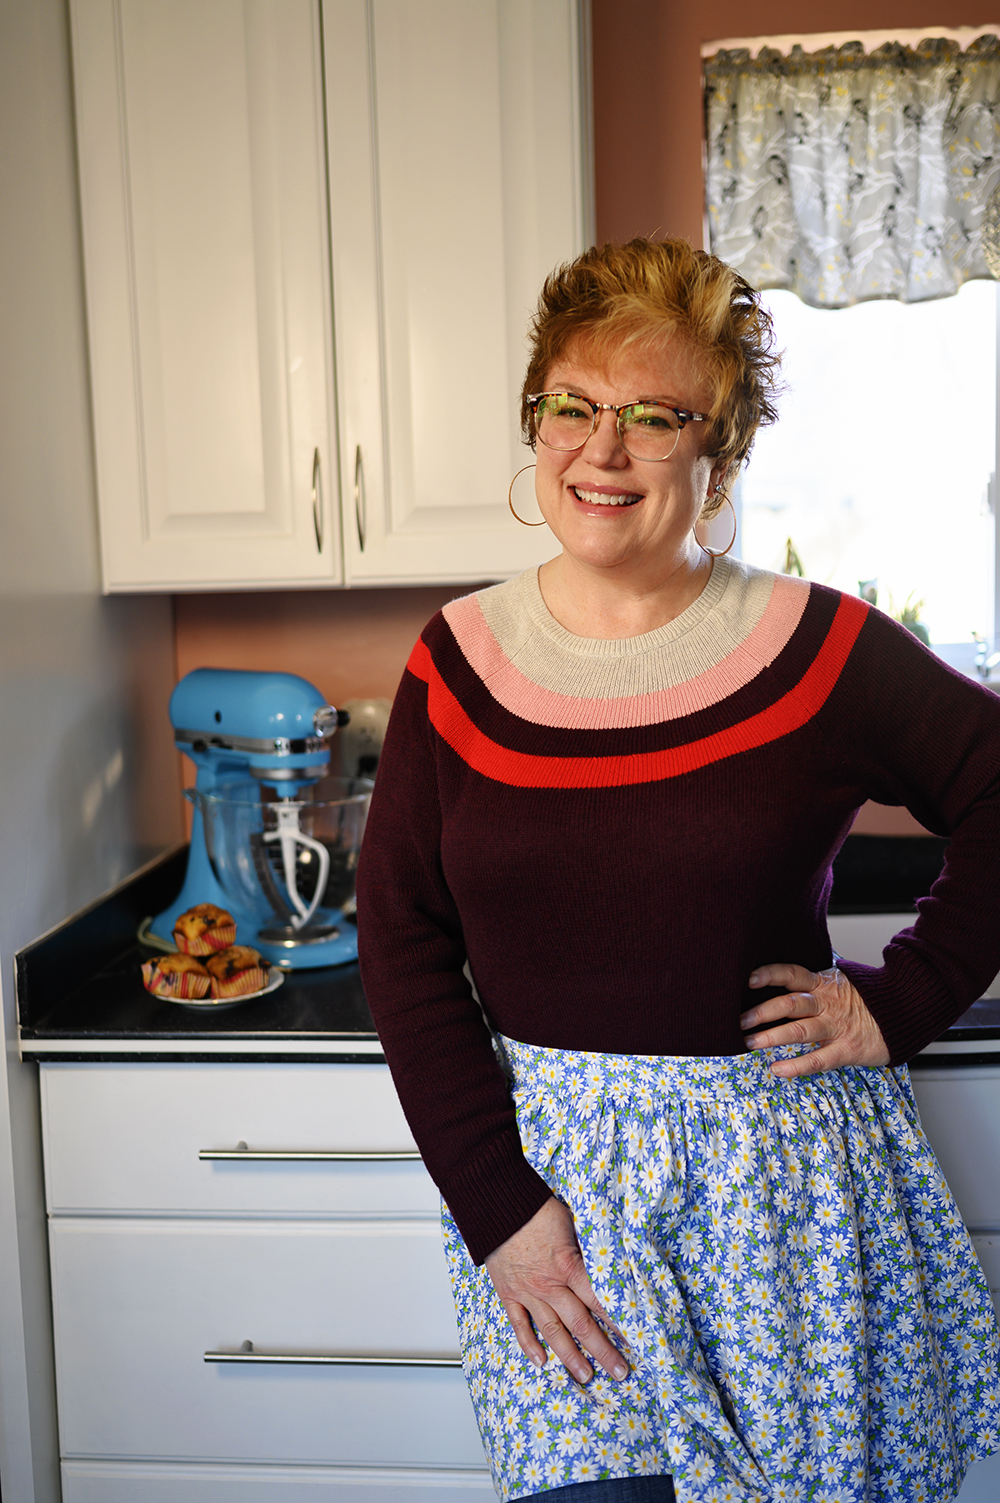 smiling woman wearing an apron in a home kitchen